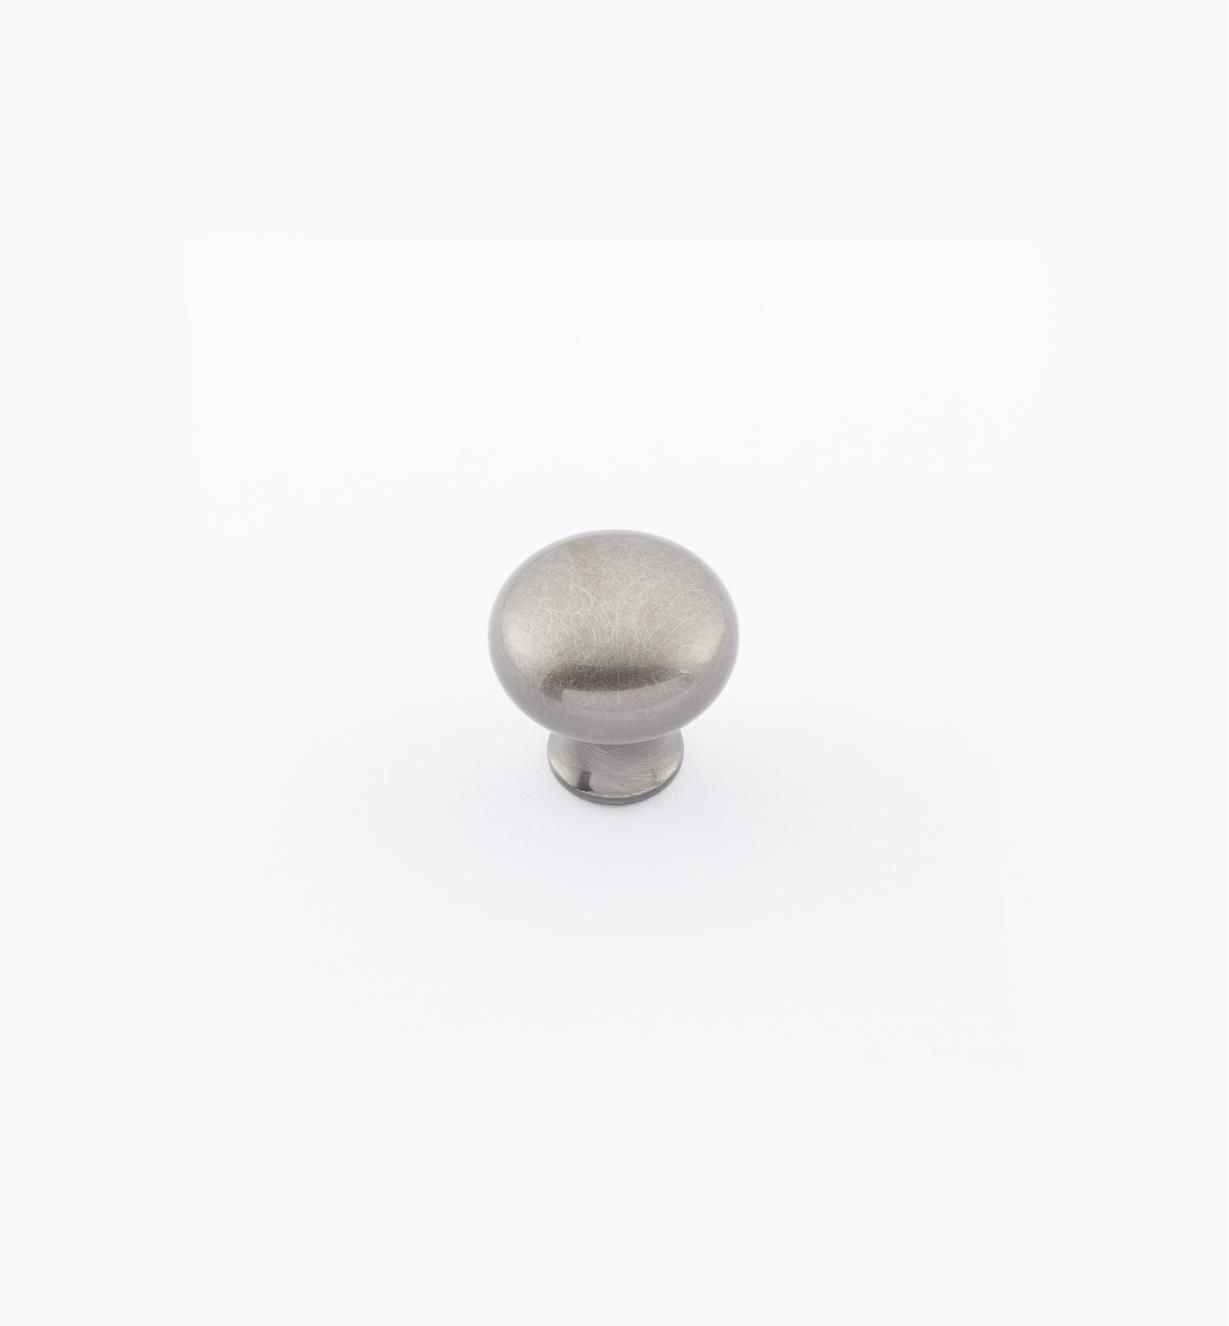 "02W1431 - 1/2"" × 1/2"" Round Brass Knob, Antique Nickel"